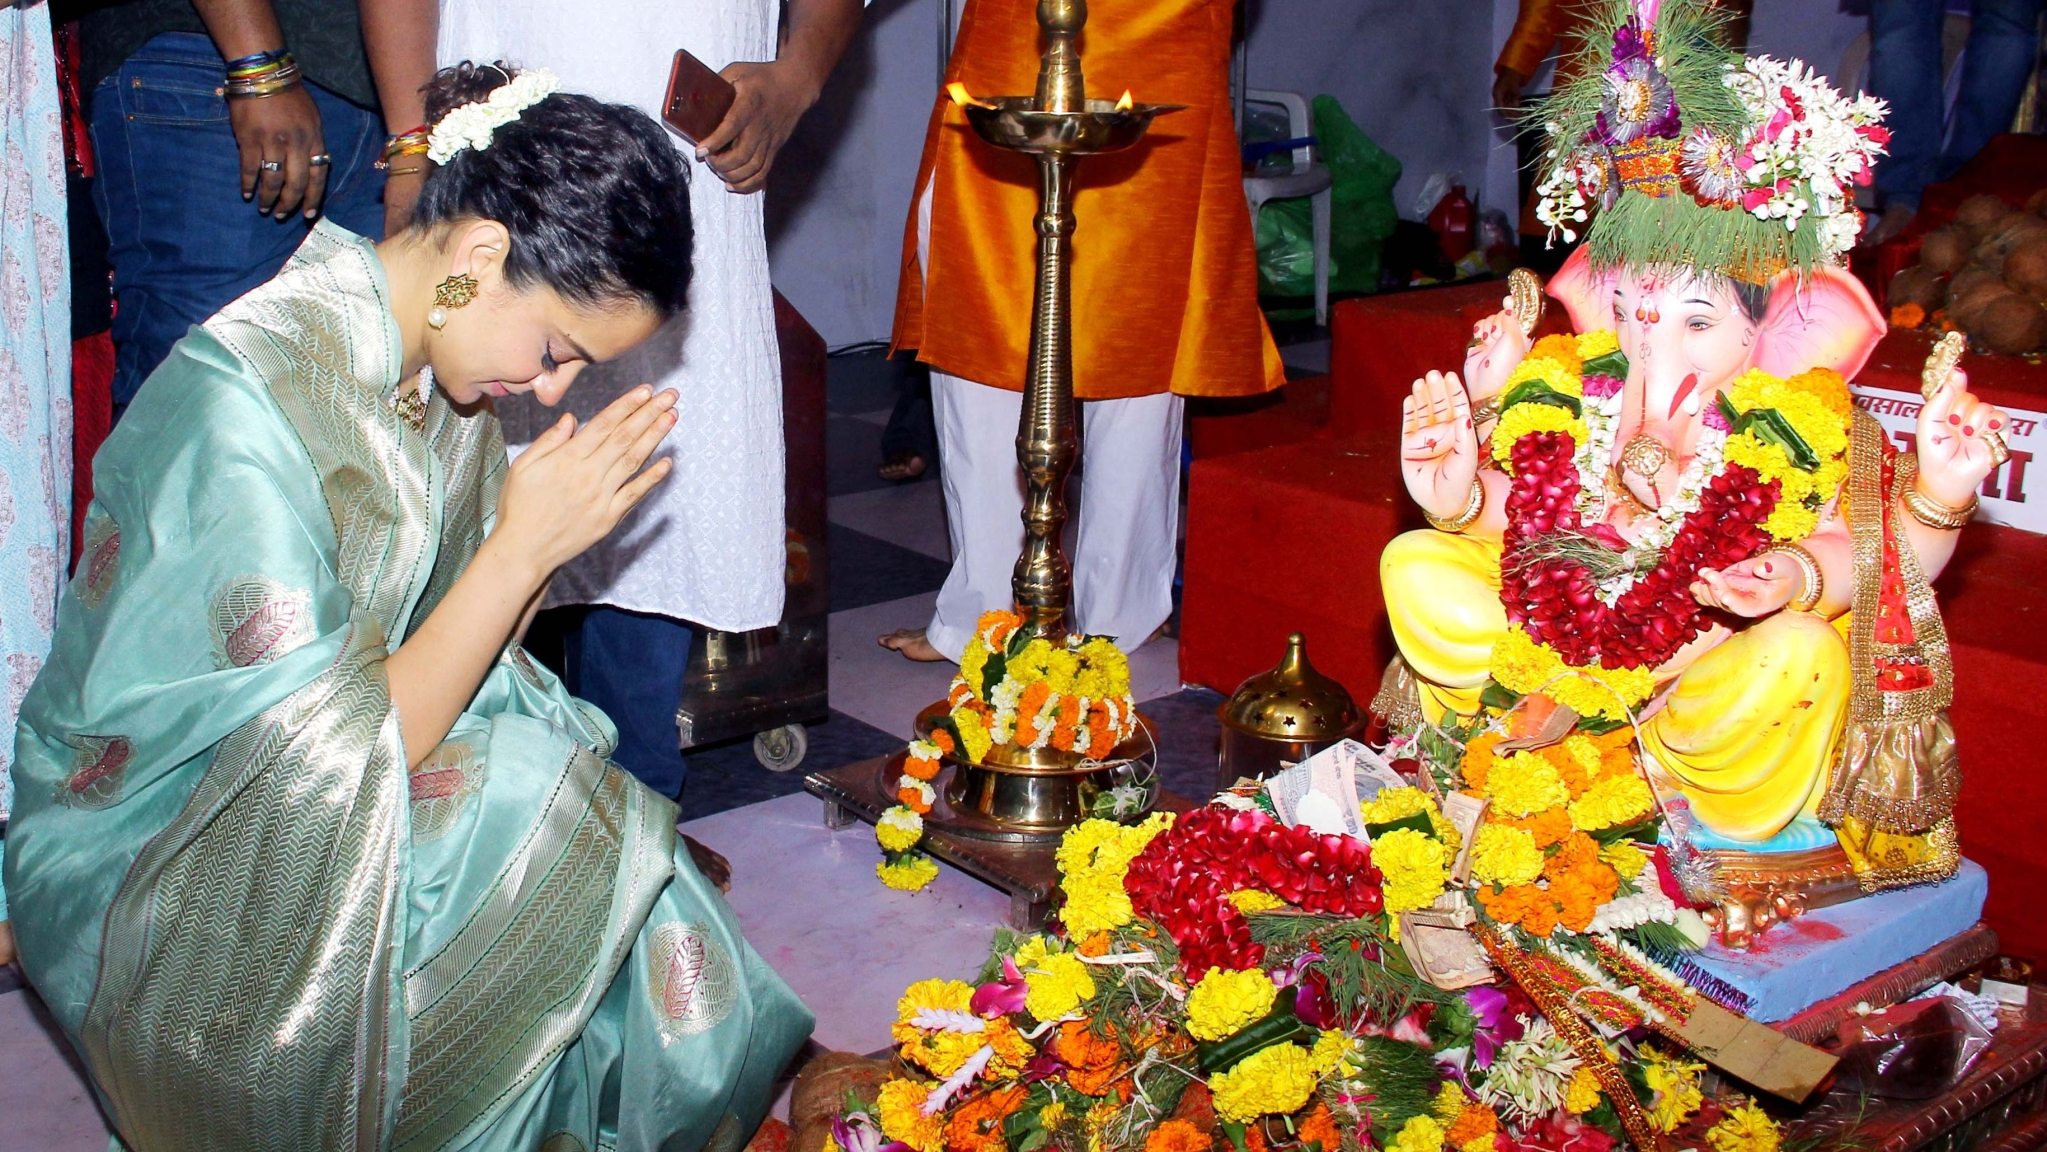 In Pics: Kangana Asks Ganesha for Blessings at Andhericha Raja